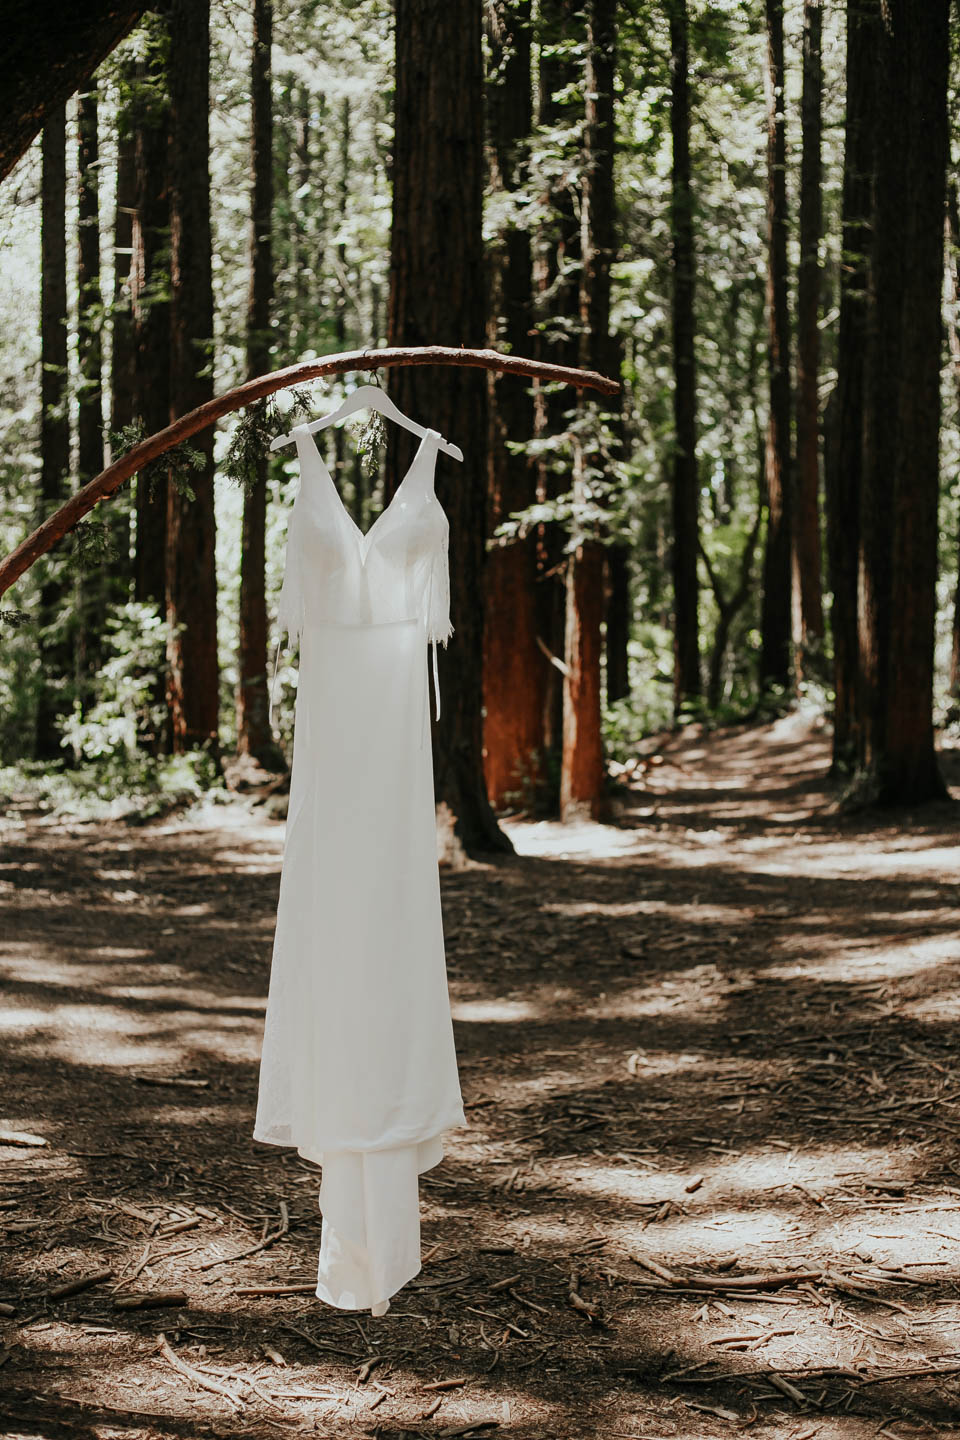 RedWoods_Styled_May2-6-2.jpg